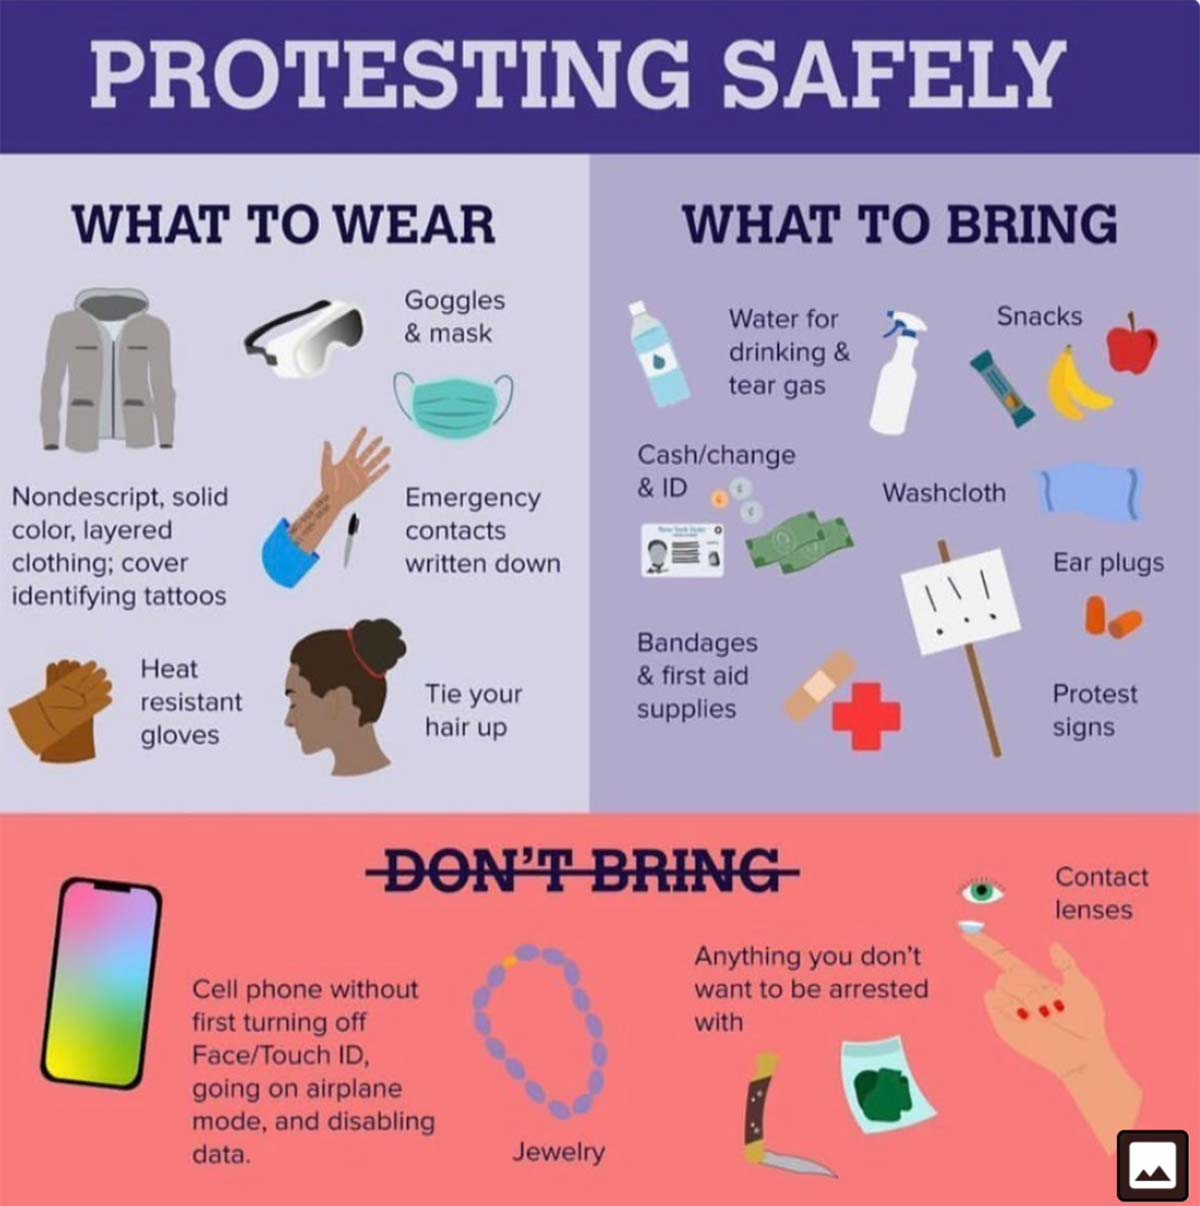 Protesting safety tips